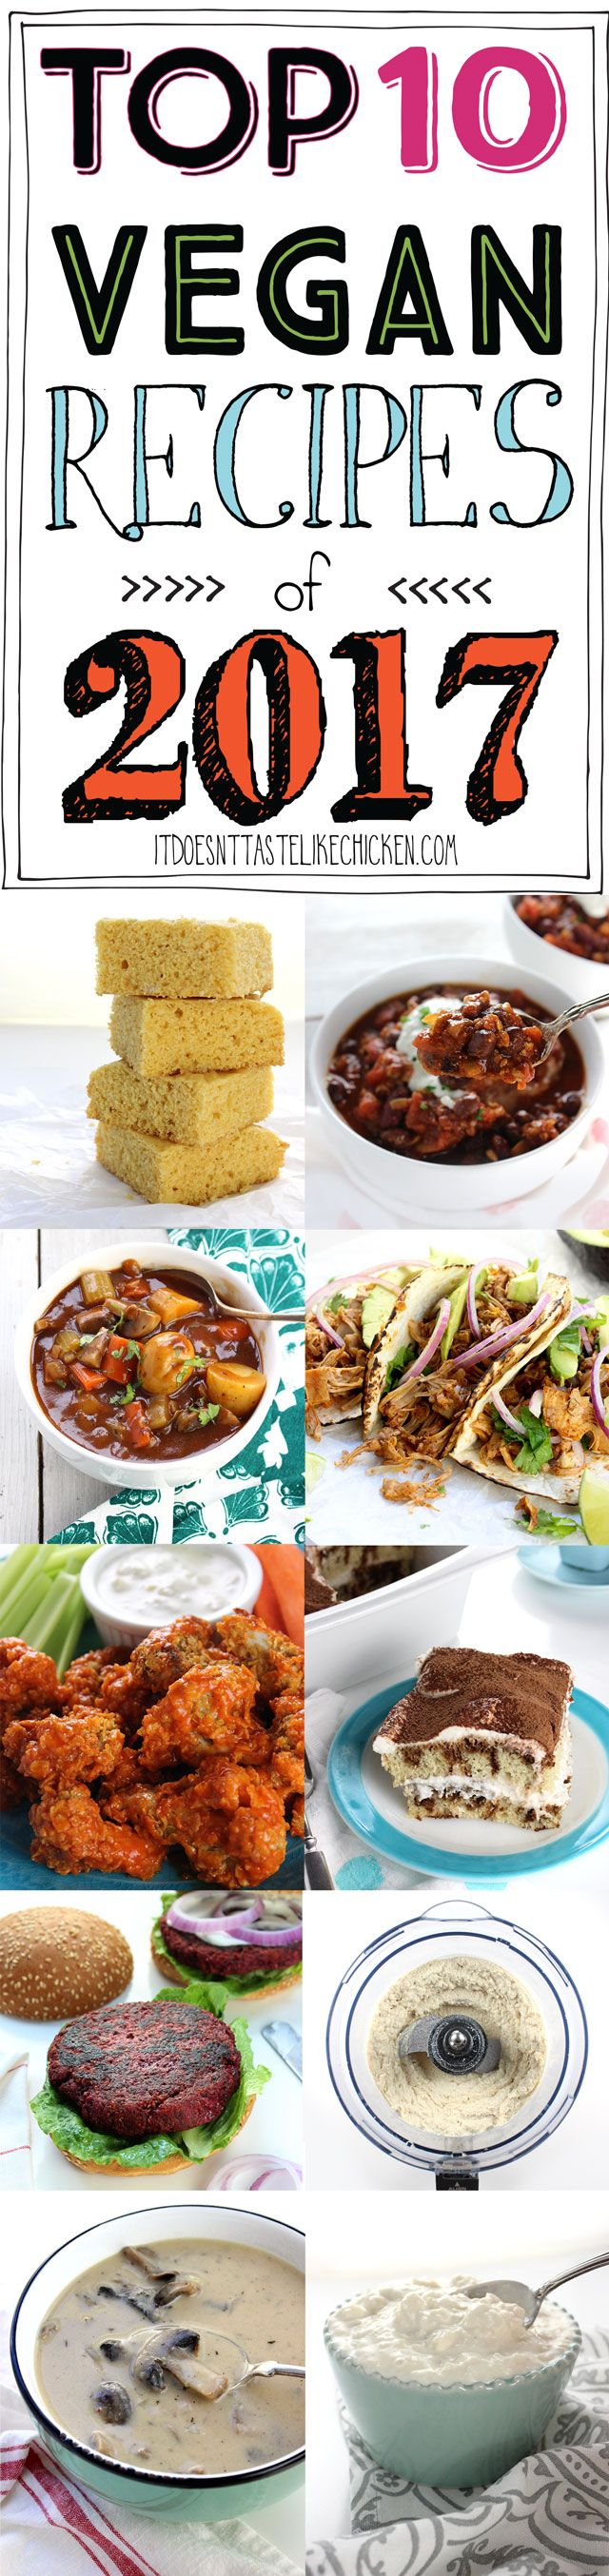 Top 10 Vegan Recipes of 2017!!!!! So many quick and easy, totally delicious vegan and vegetarian recipes. #itdoesnttastelikechicken via @bonappetegan